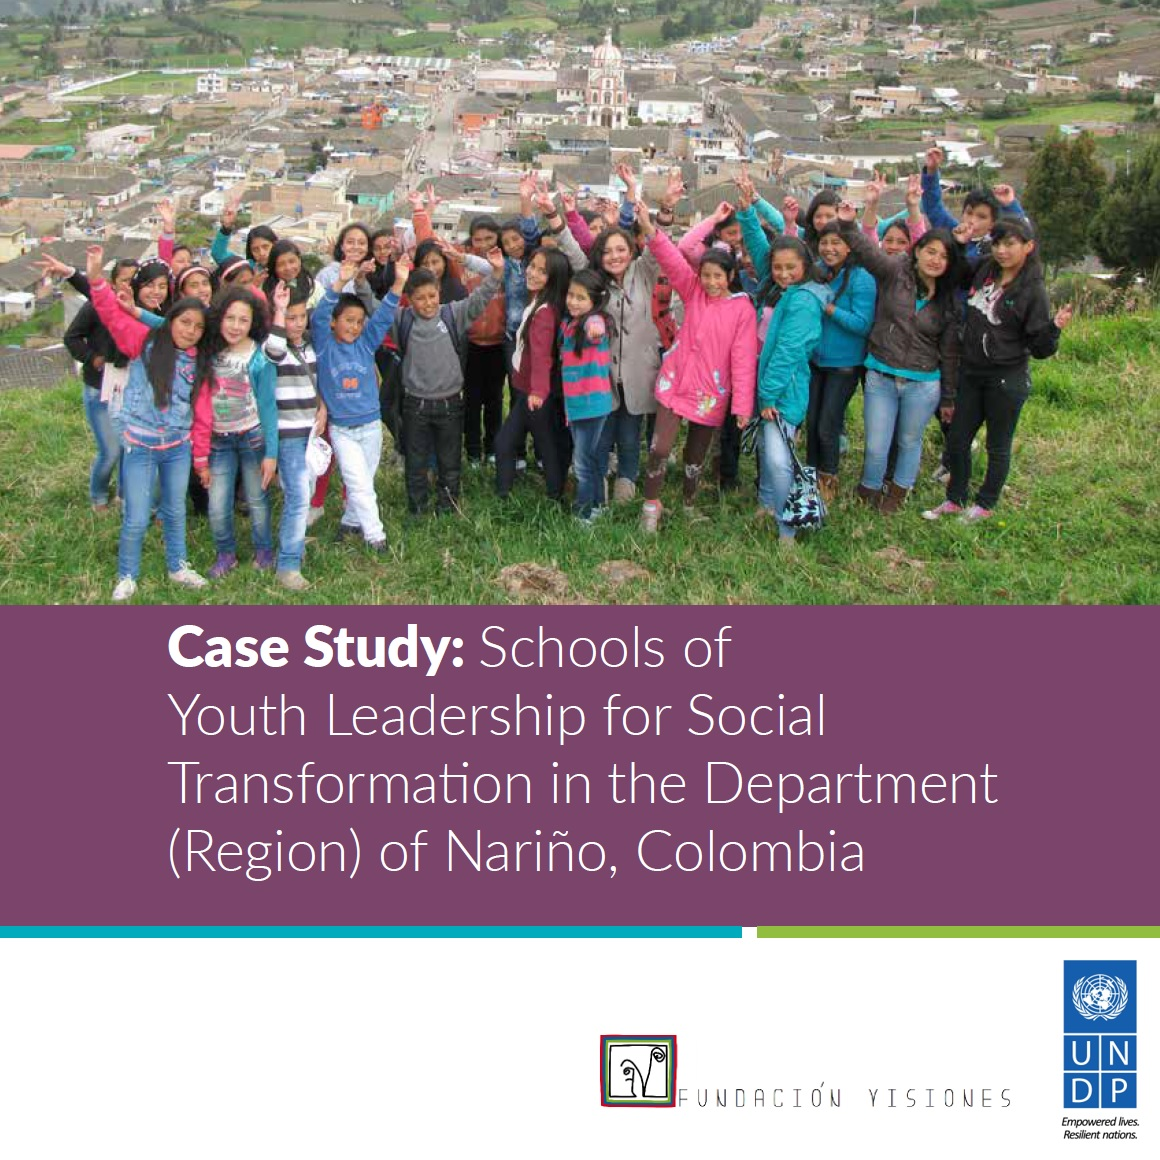 Case Study - Schools of Youth Leadership (Nariño, Colombia)